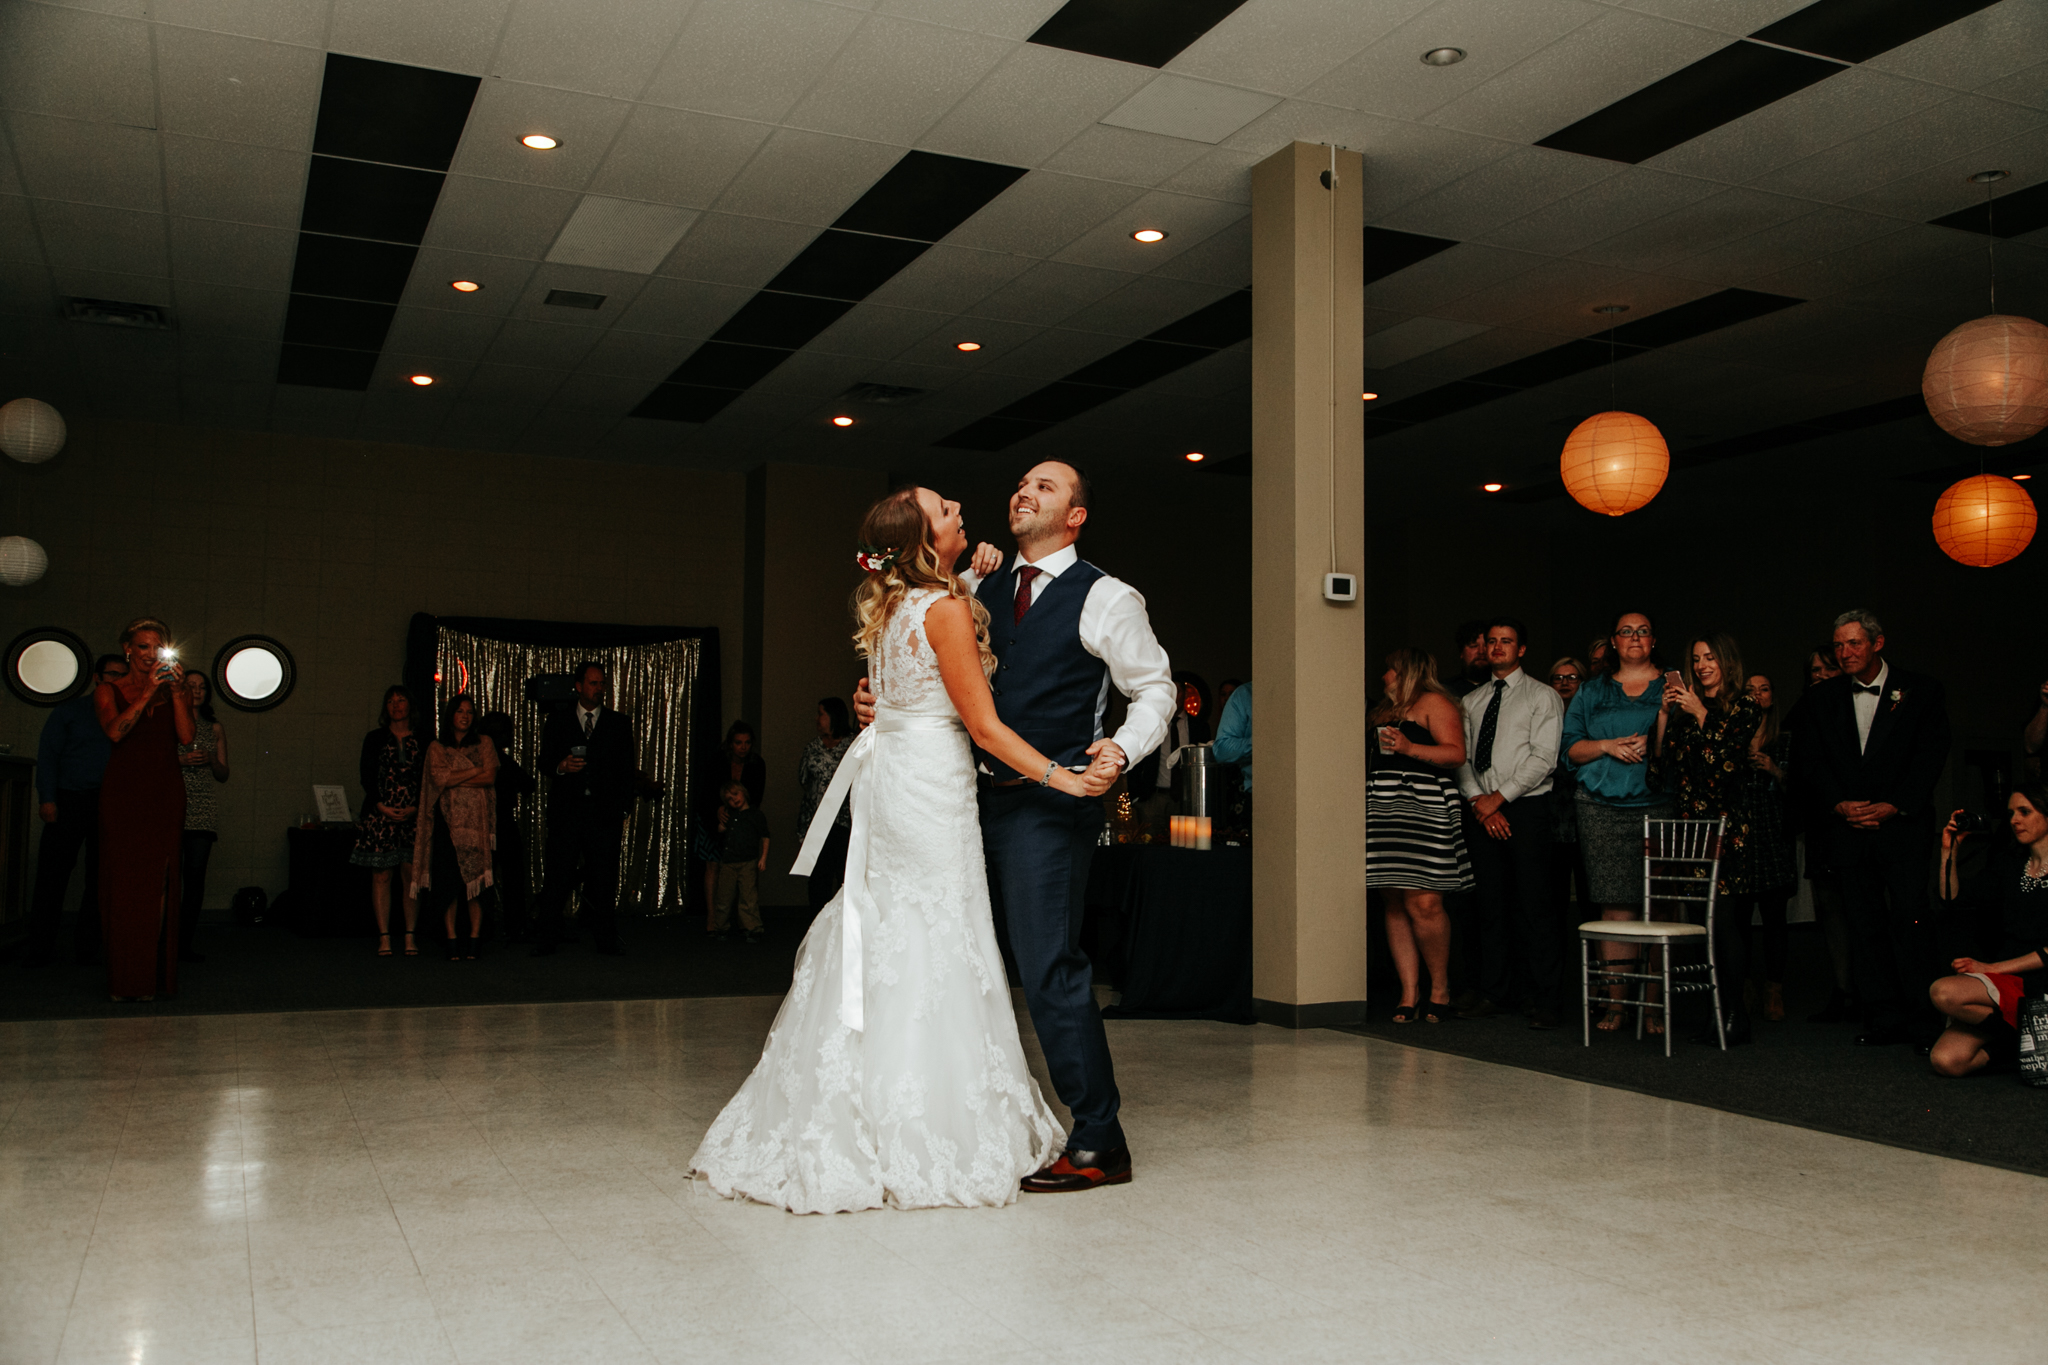 lethbridge-photographer-love-and-be-loved-photography-rocky-mountain-turf-club-reception-katie-kelli-wedding-picture-image-photo-424.jpg